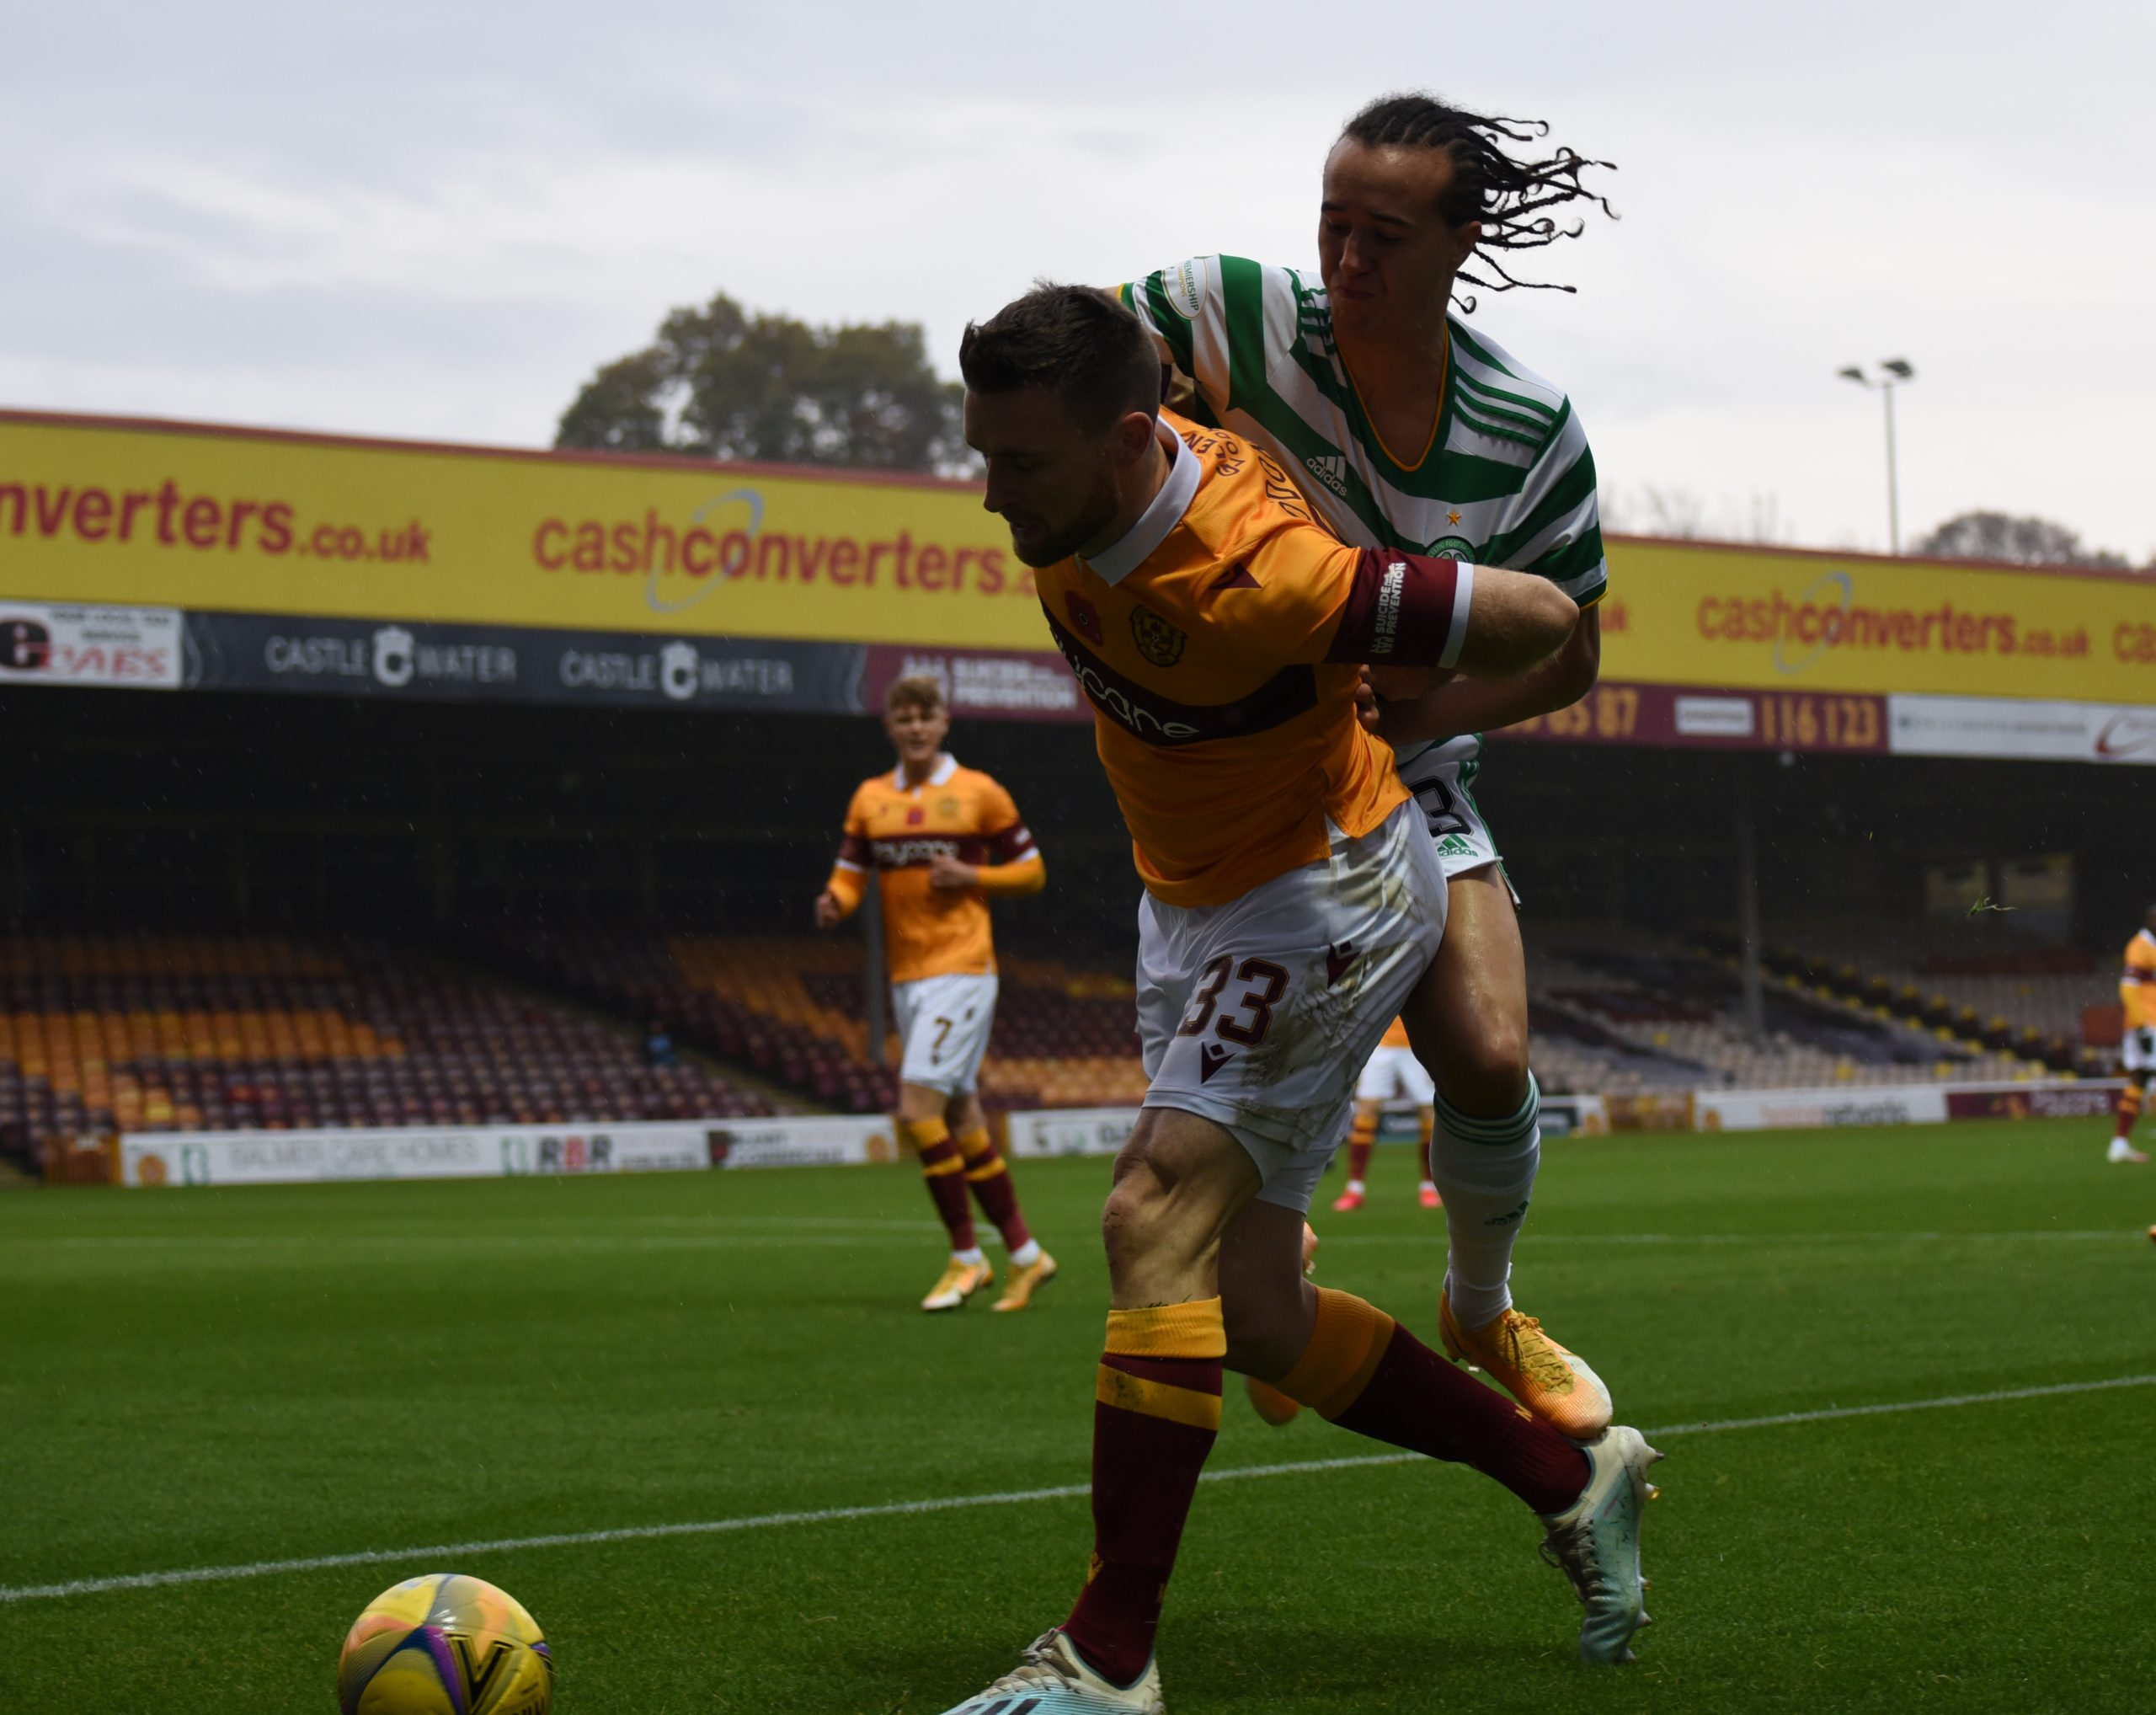 Motherwell v Celtic , 8 November 2020 , Scottish Premiership, photograph by David Rankin , News Pictures Scotland , phone 07723-538941 www.newspicturesscotland.co.uk